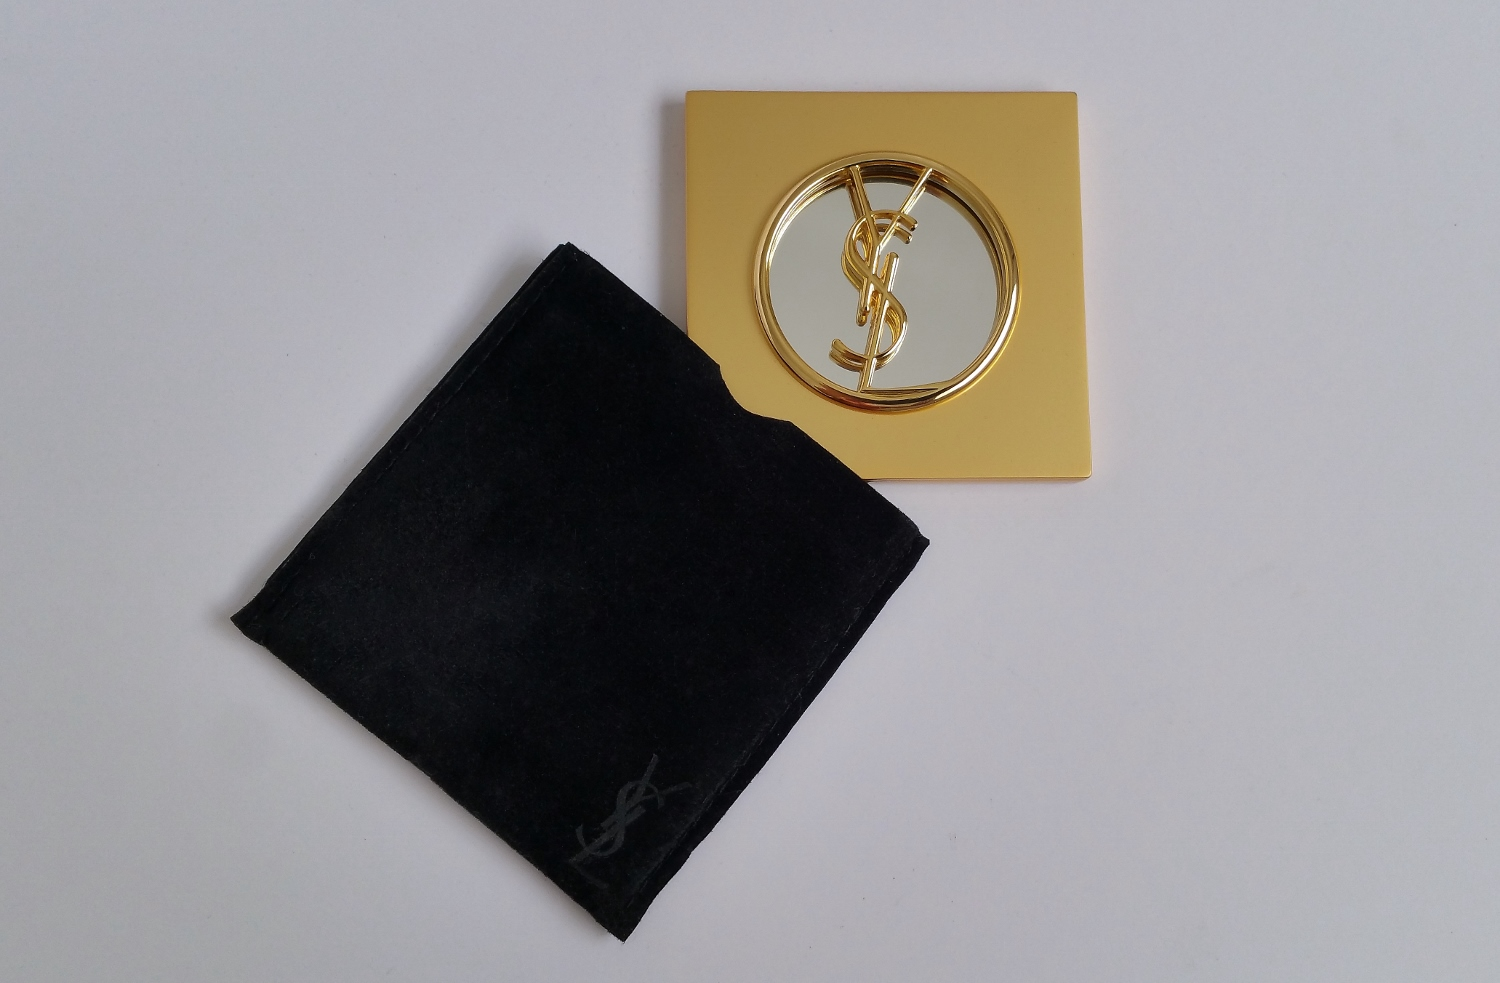 ysl compact makeup mirror gilt 1980s ca french in